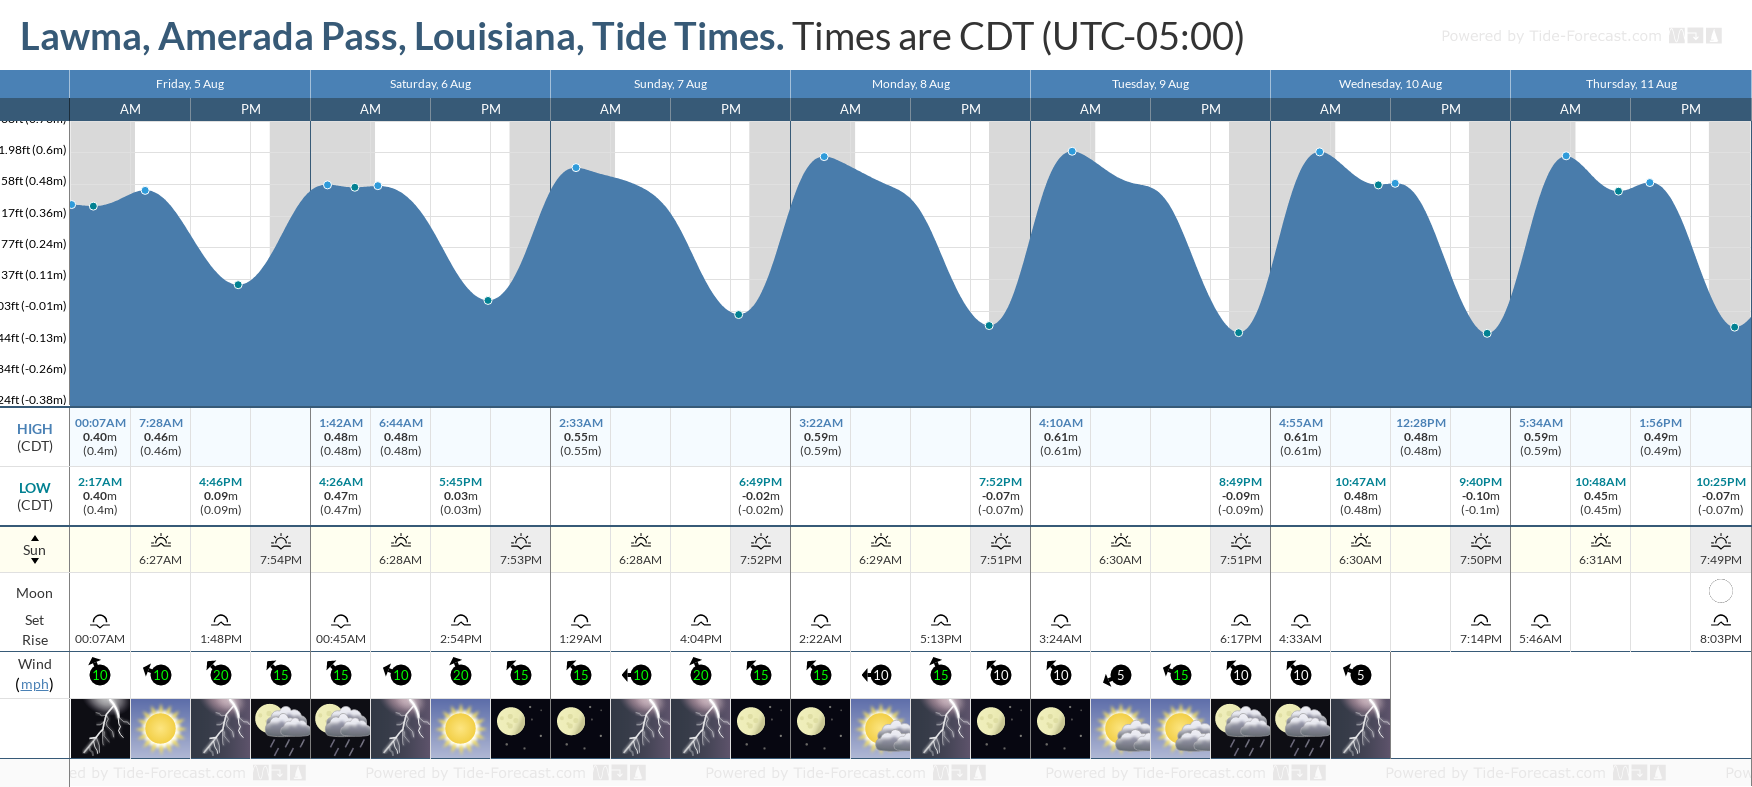 Lawma, Amerada Pass, Louisiana Tide Chart including high and low tide tide times for the next 7 days